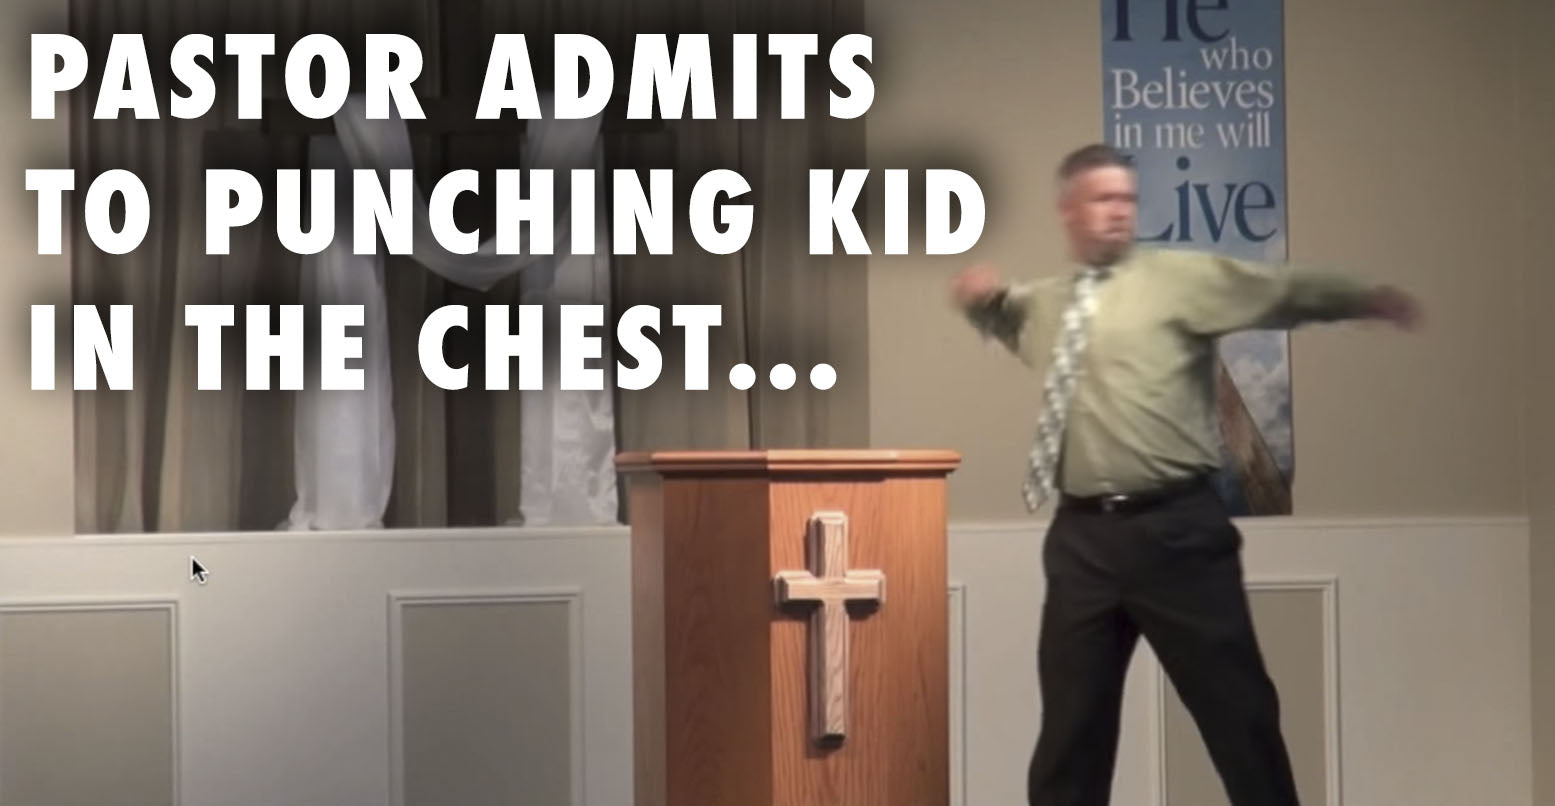 Is It Ok For A Pastor To Punch A Kid In The Chest? (VIDEO)